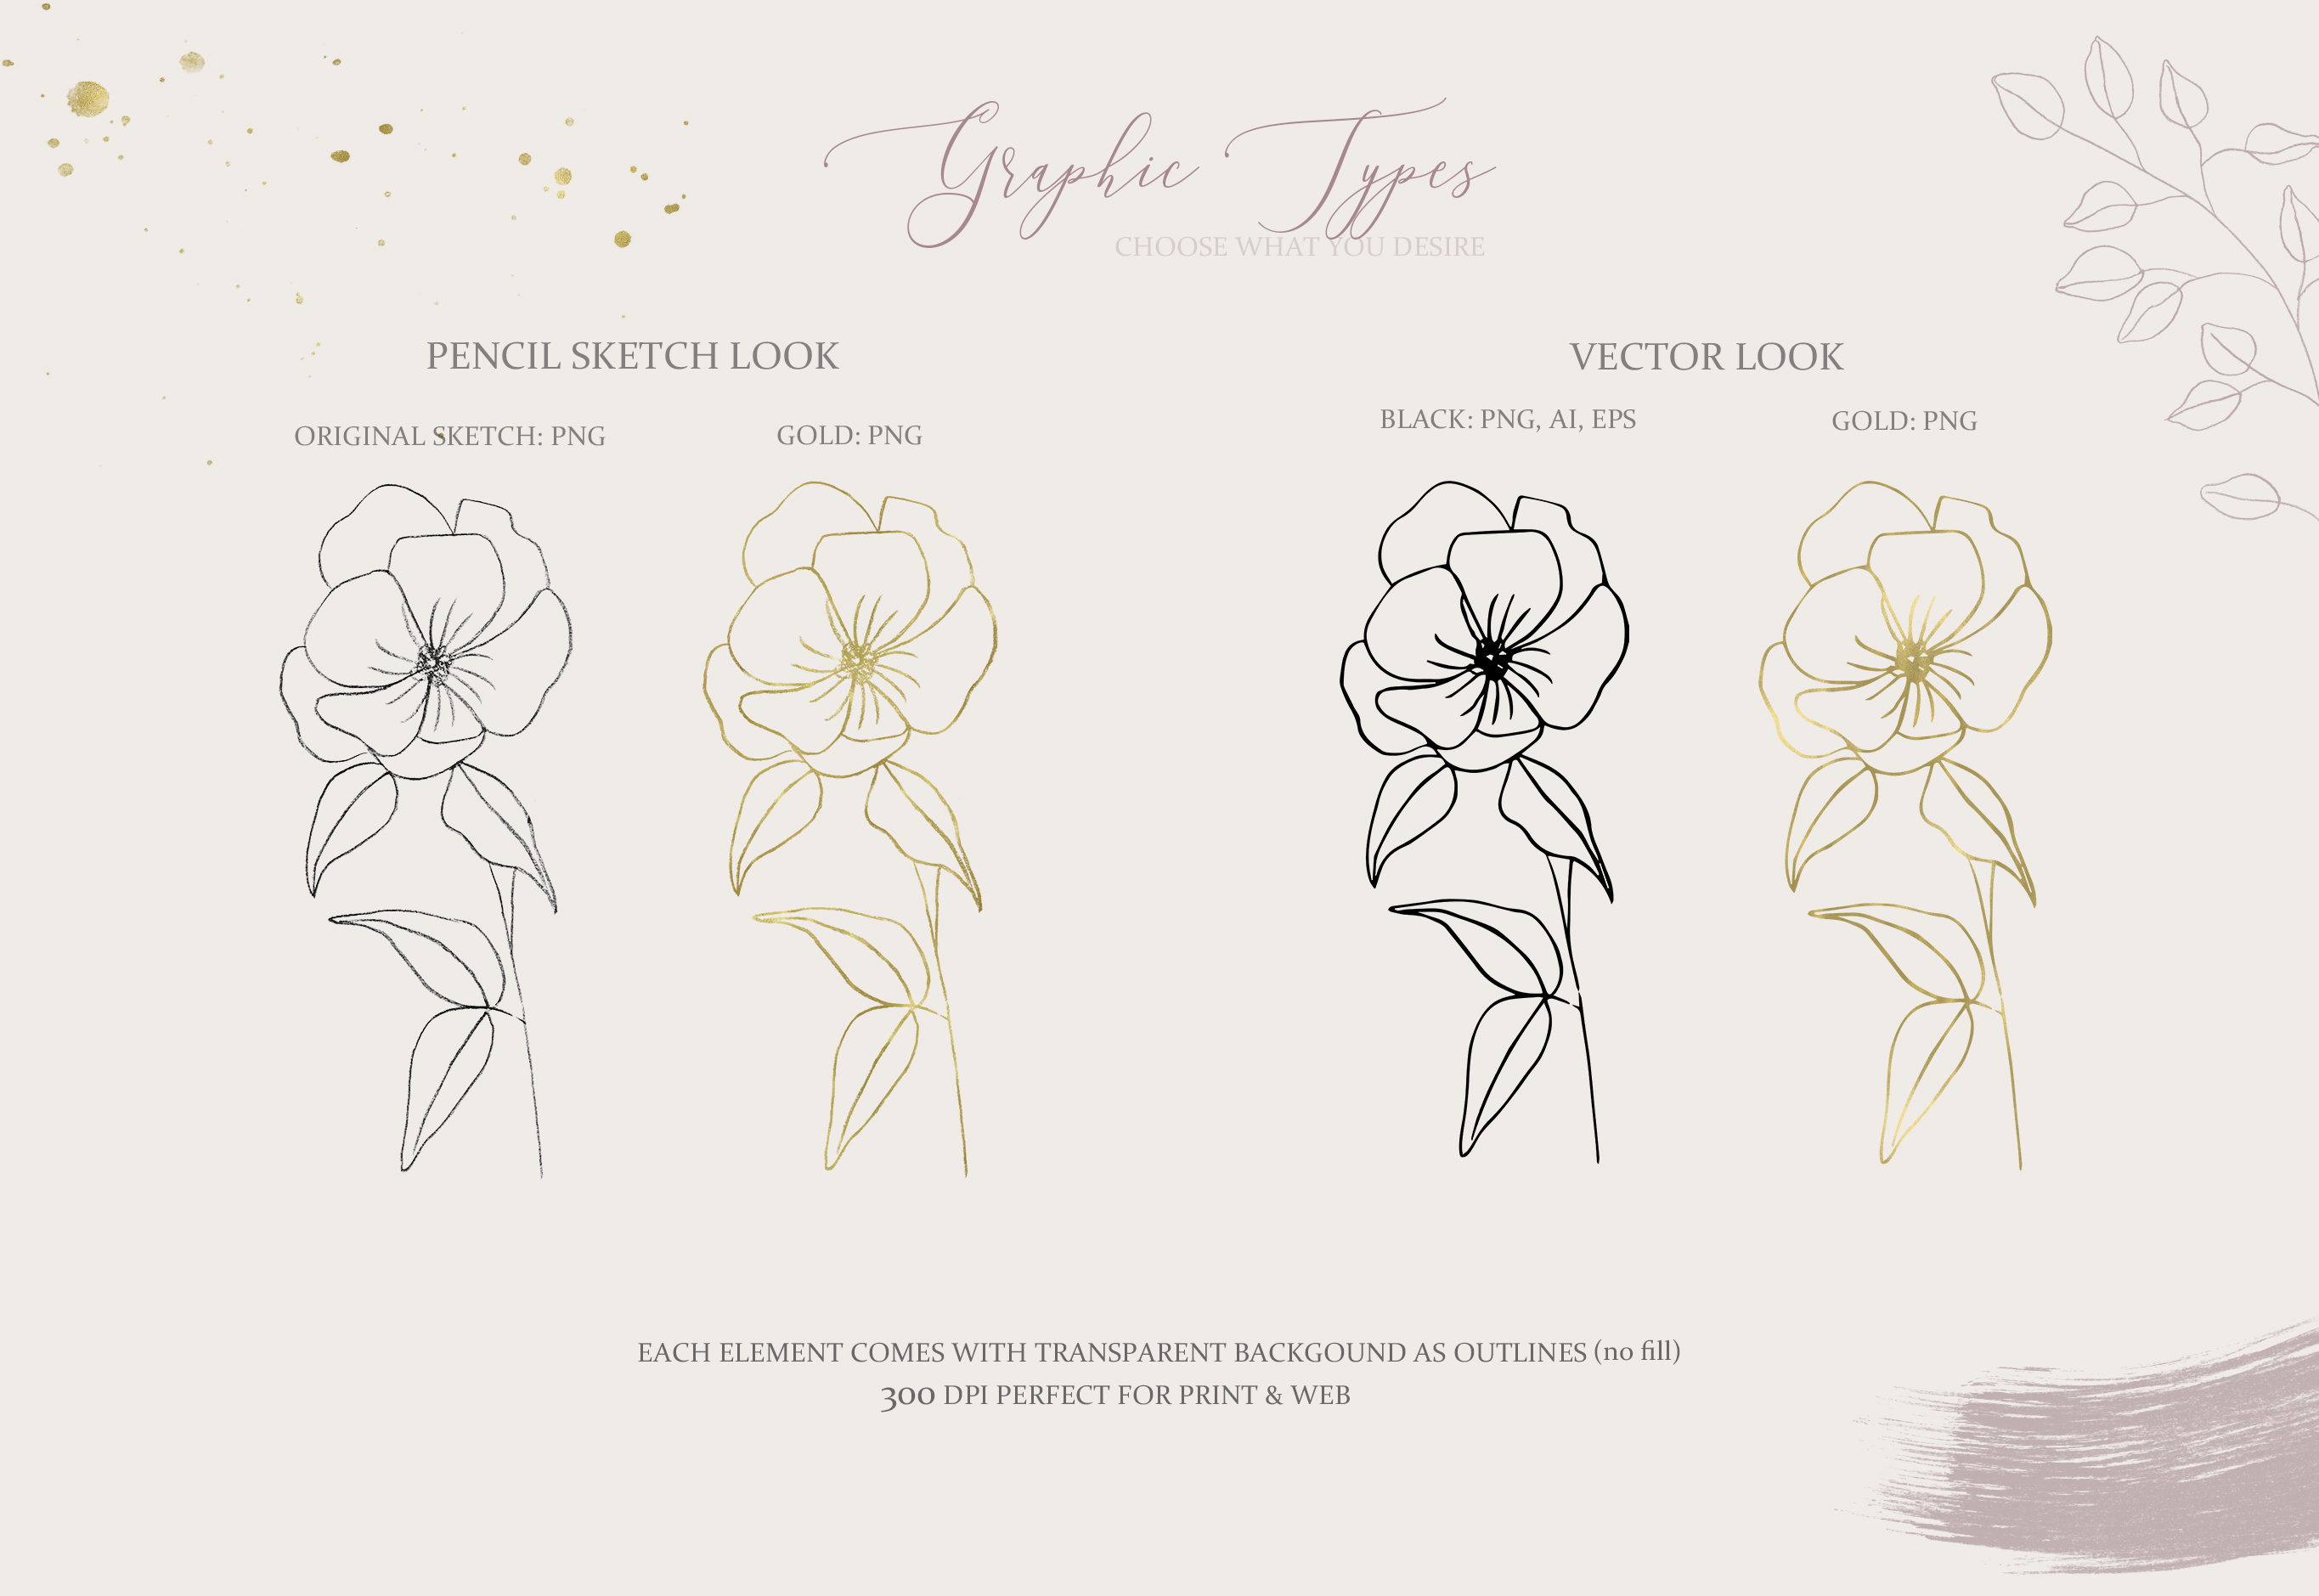 Fine Art Pencil Sketch Florals, Gold Brush Strokes, Textures example image 3